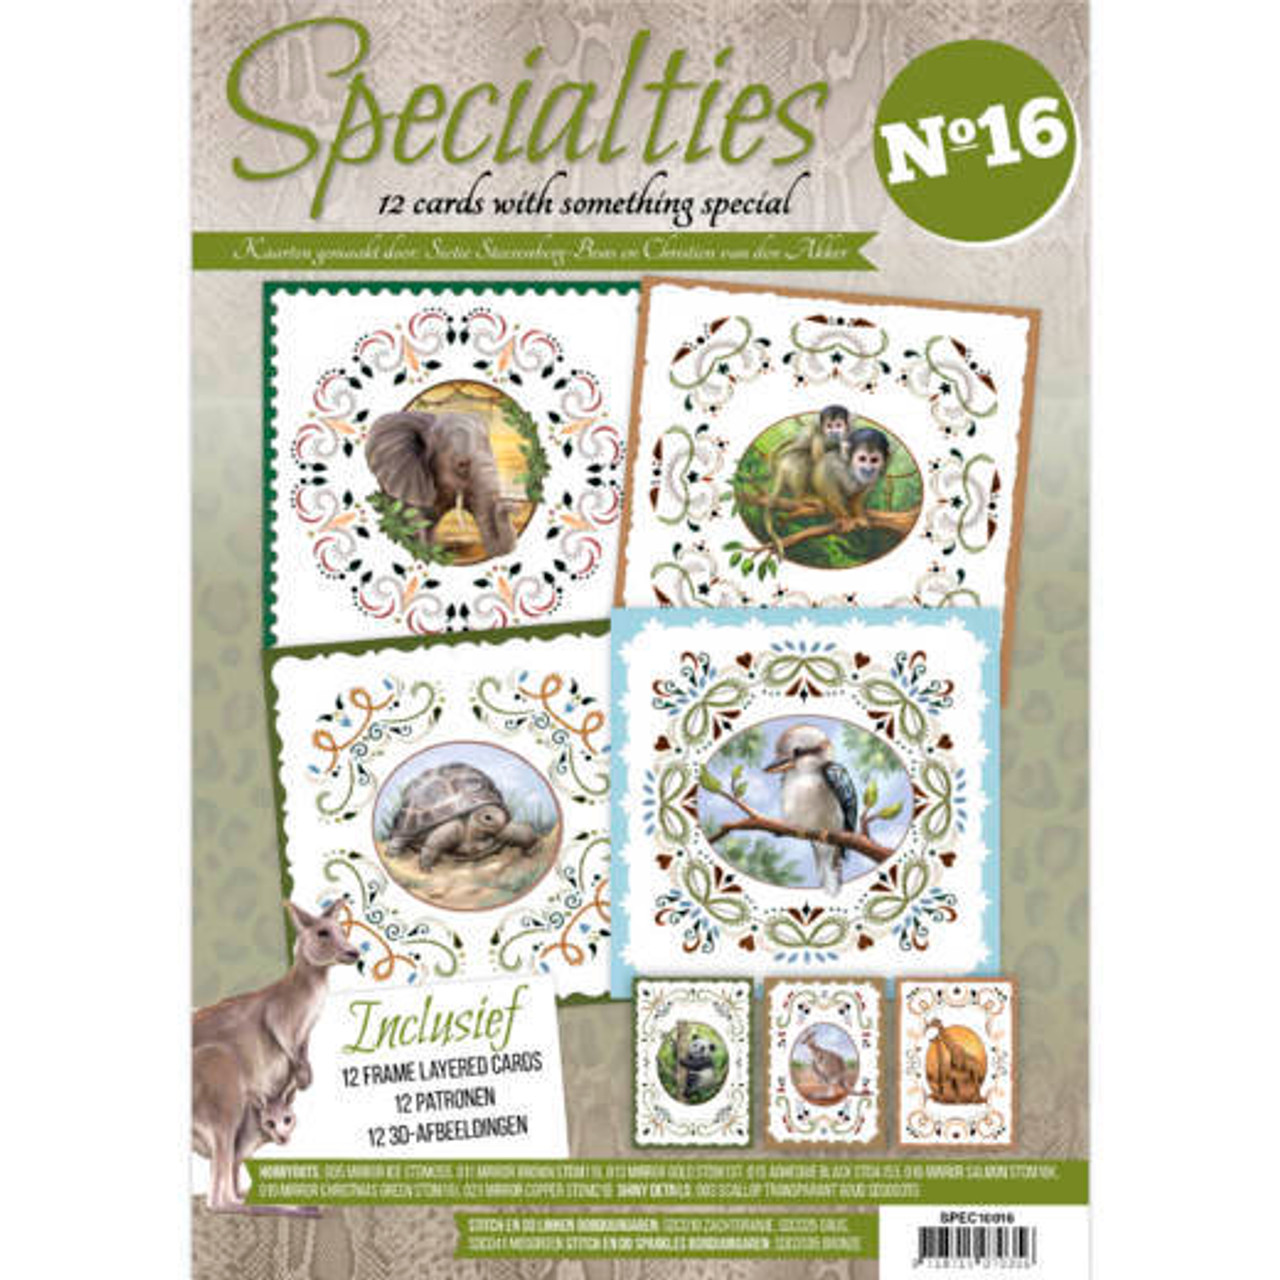 Specialties A4 Booklet 16 - Card Embroidery & Hobbydots